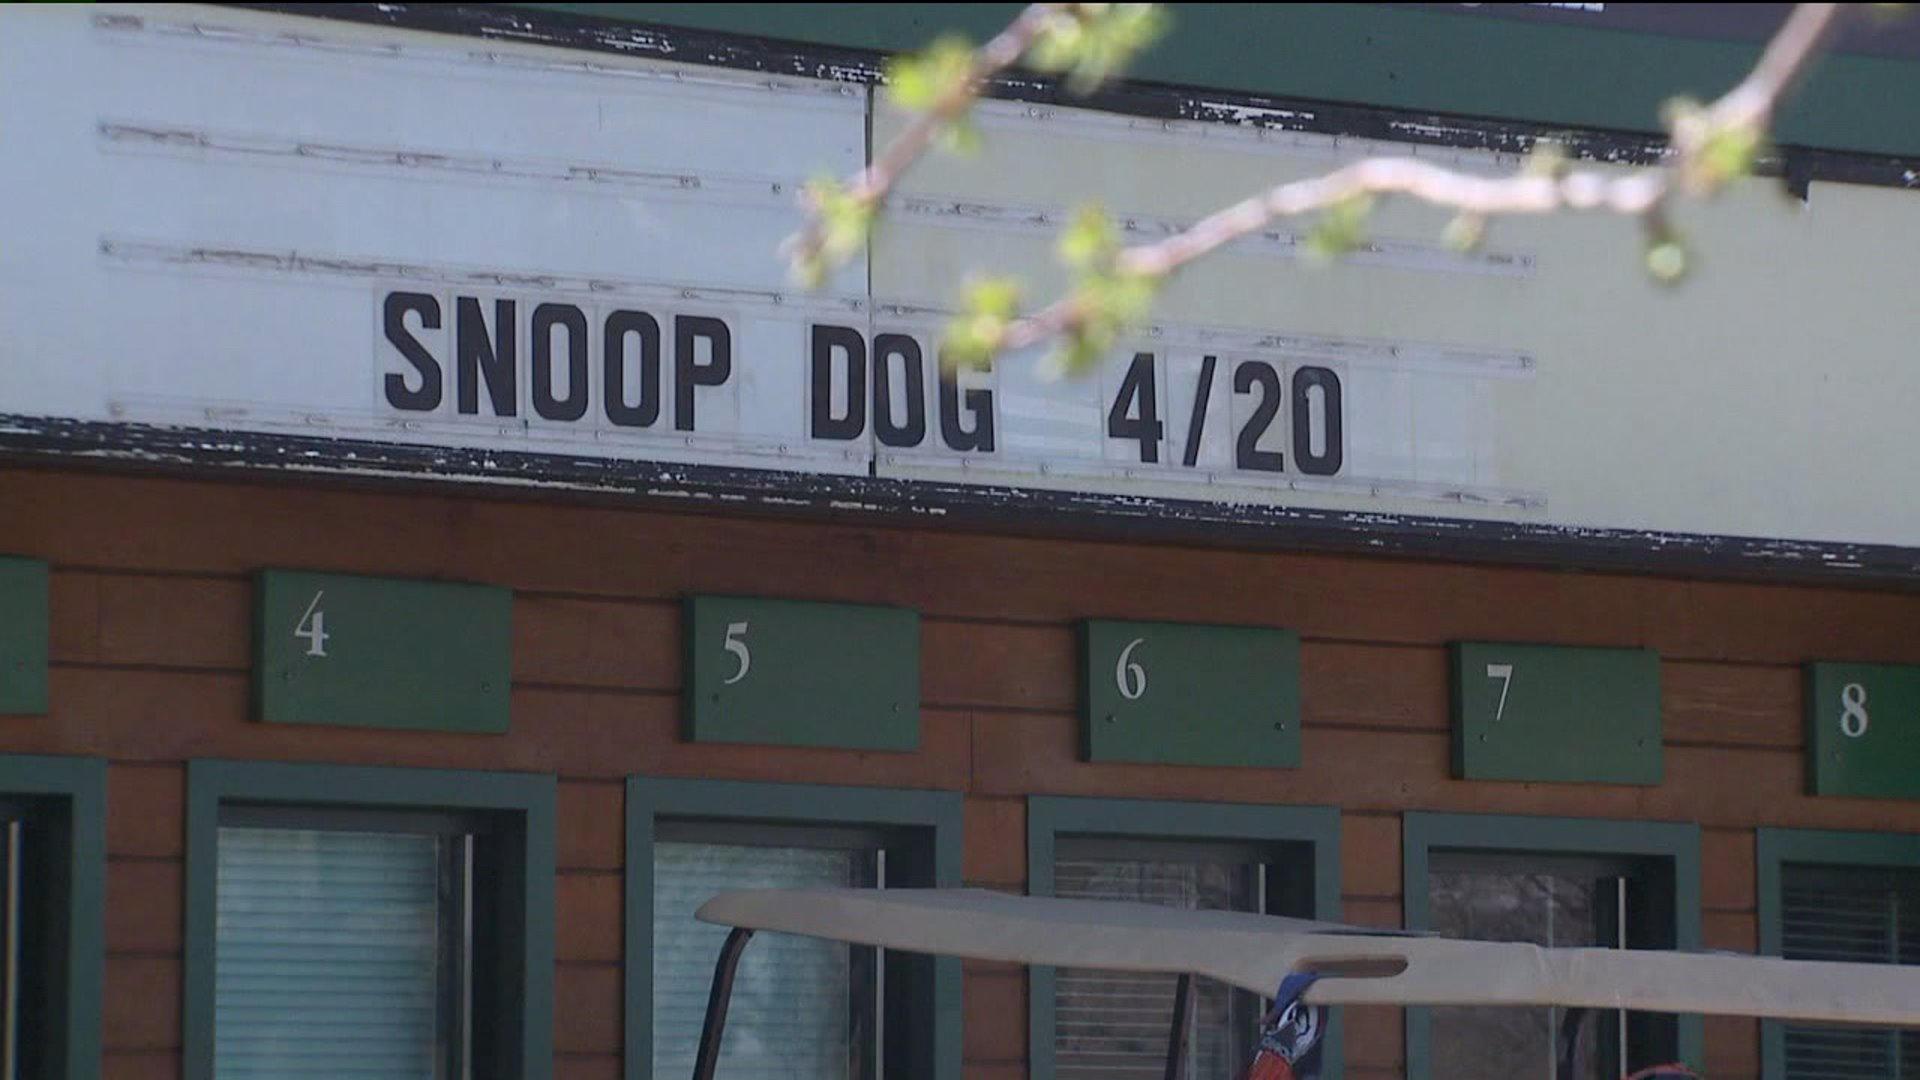 Snoop Dog coming to Fiddler's Green on 4-20